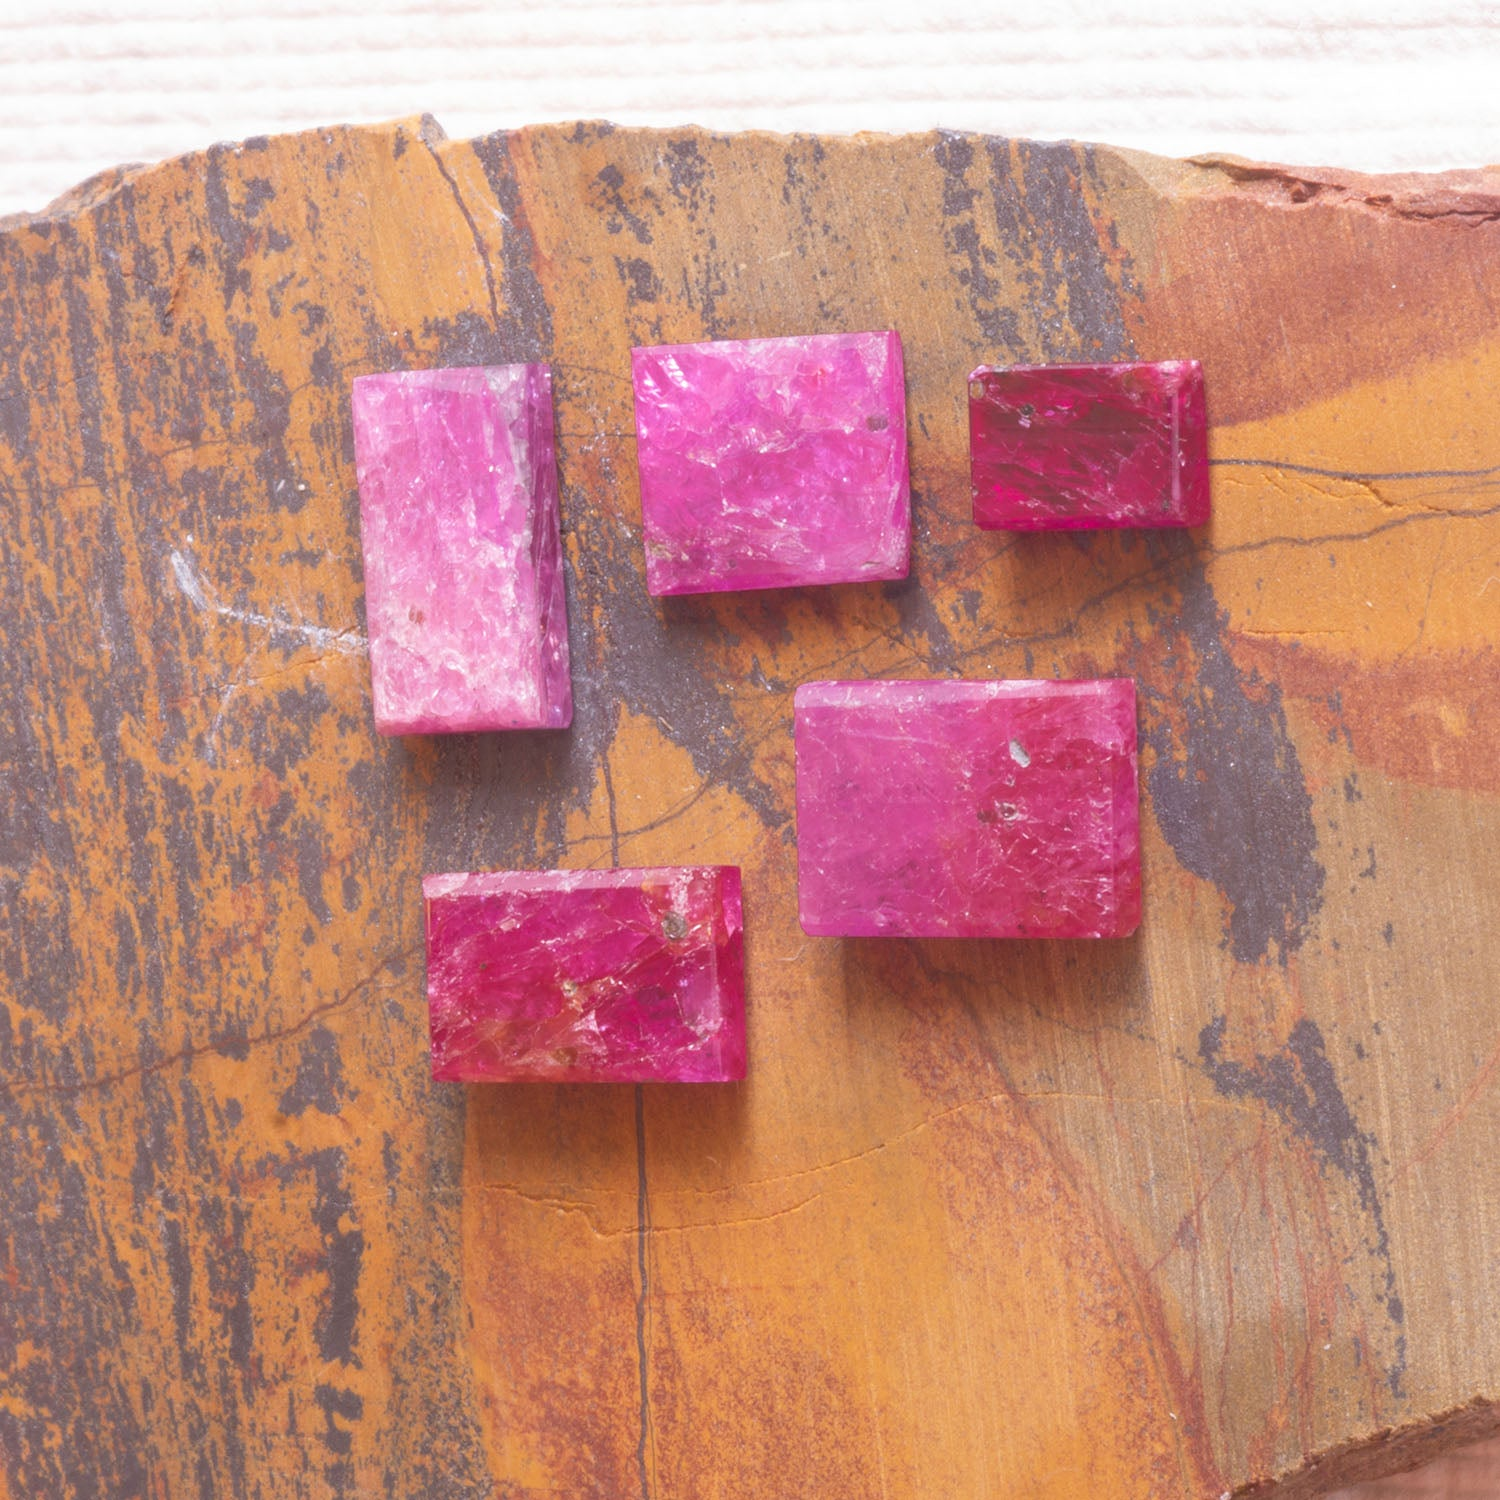 9.37ct Mozambique Ruby Parcel in Flat Cut, Bespoke flat cut loose ruby